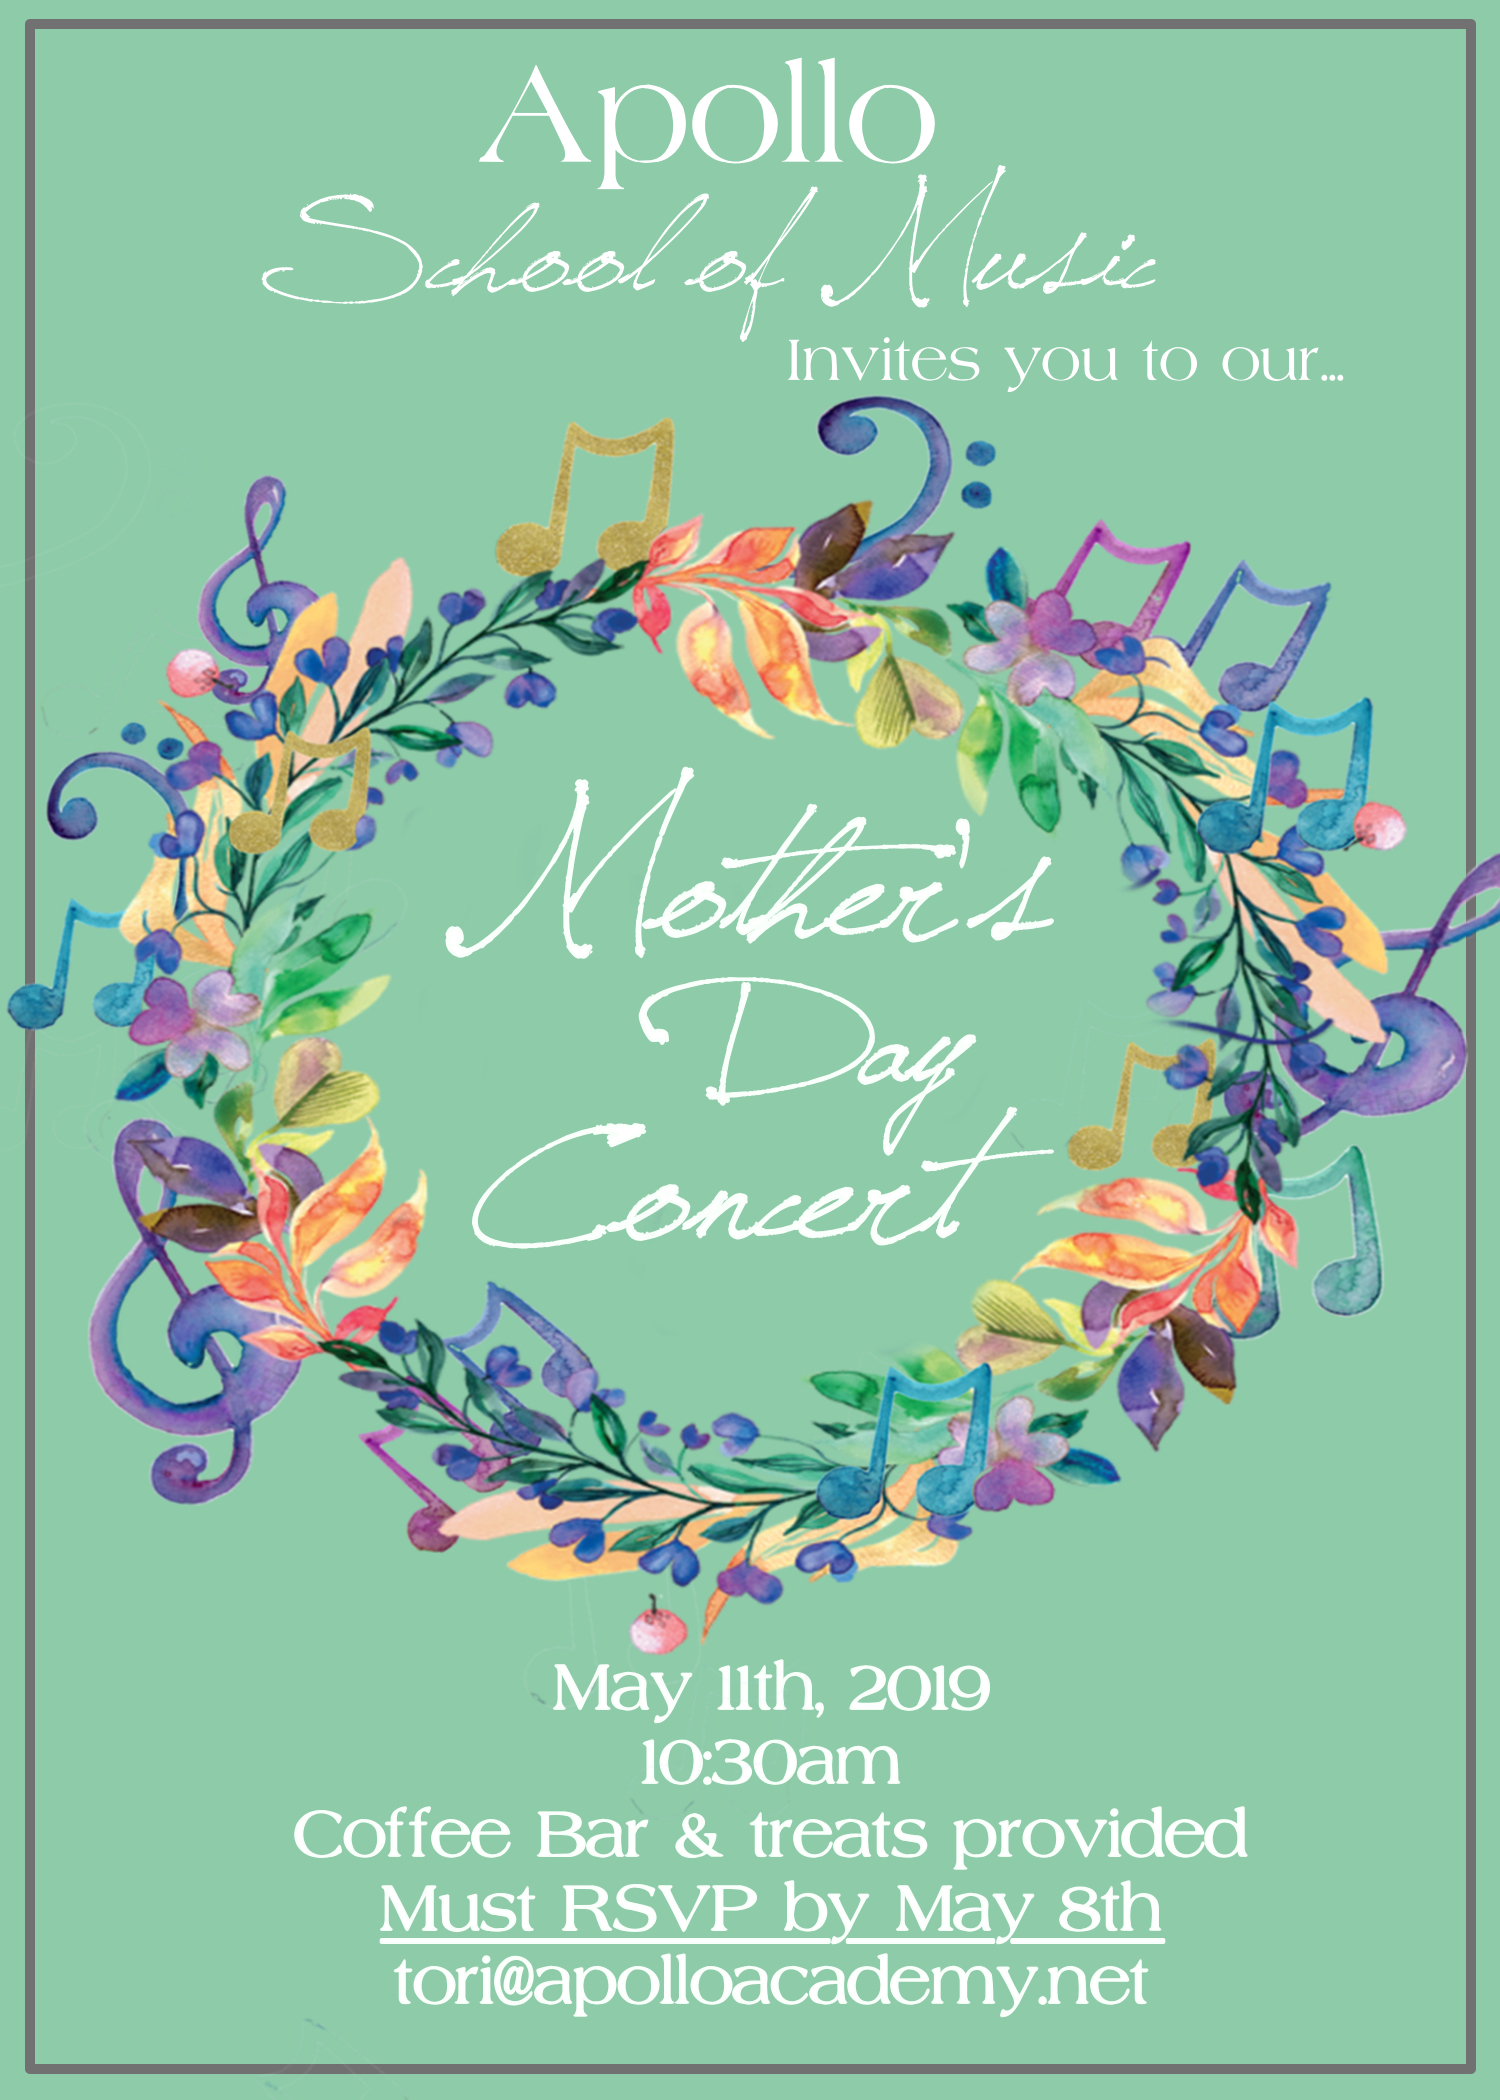 Apollo invites allMothers of chicoto our...MOTHERS DAY CONCERT! - Come enjoy Coffee(provided by Chico Coffee Co.)& breakfast pastries while listeningto the performances byour wonderful students 10:30am-Noon